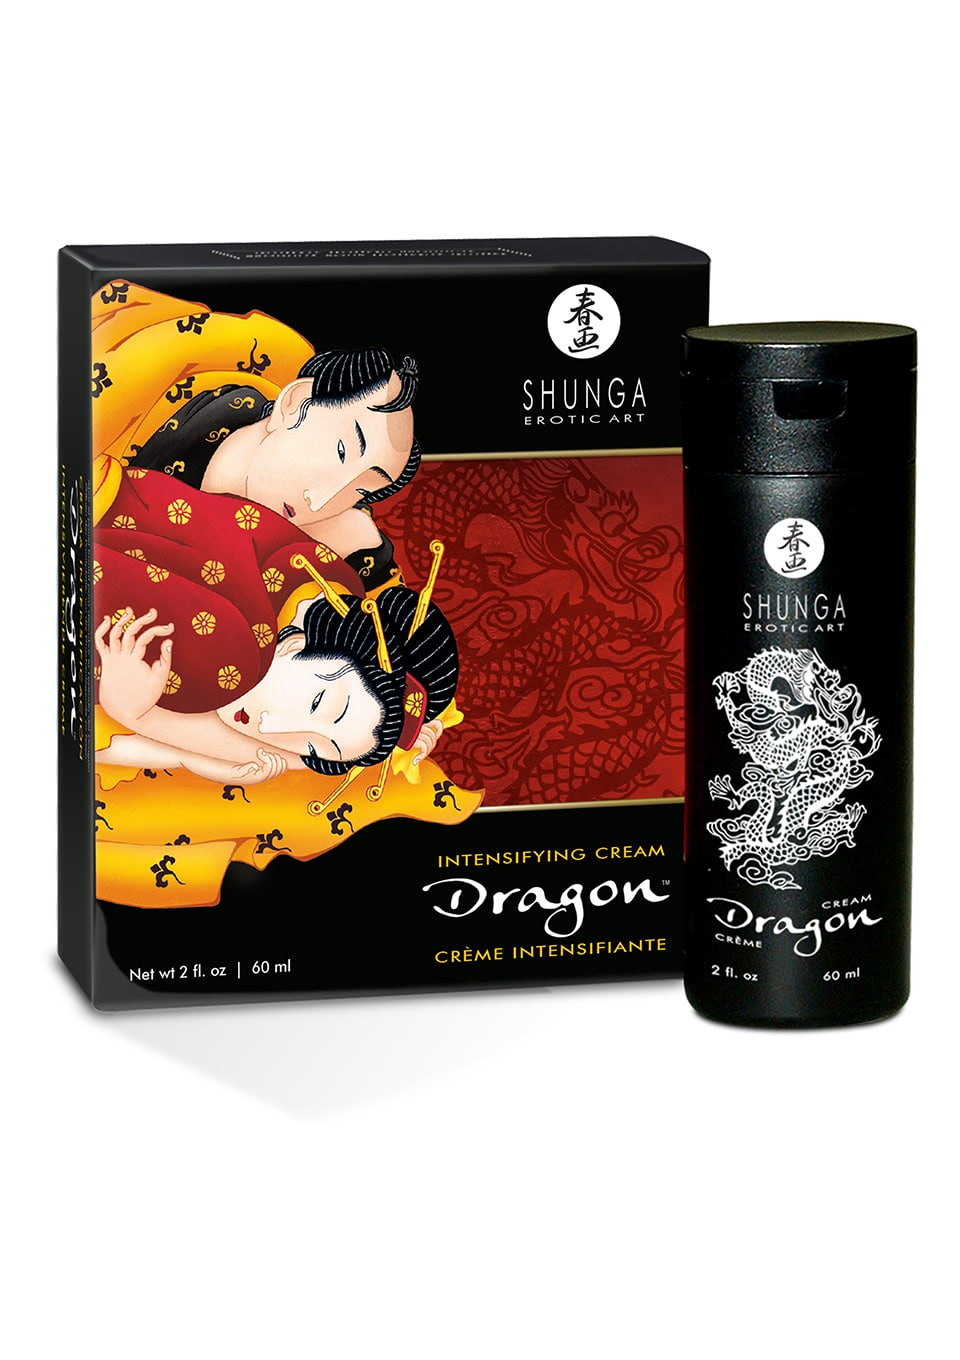 SHUNGA DRAGON VIRILITY CREAM | Better Sex, Sex Enhancement, Sex Toys, Adult Toys | My Sex Shop